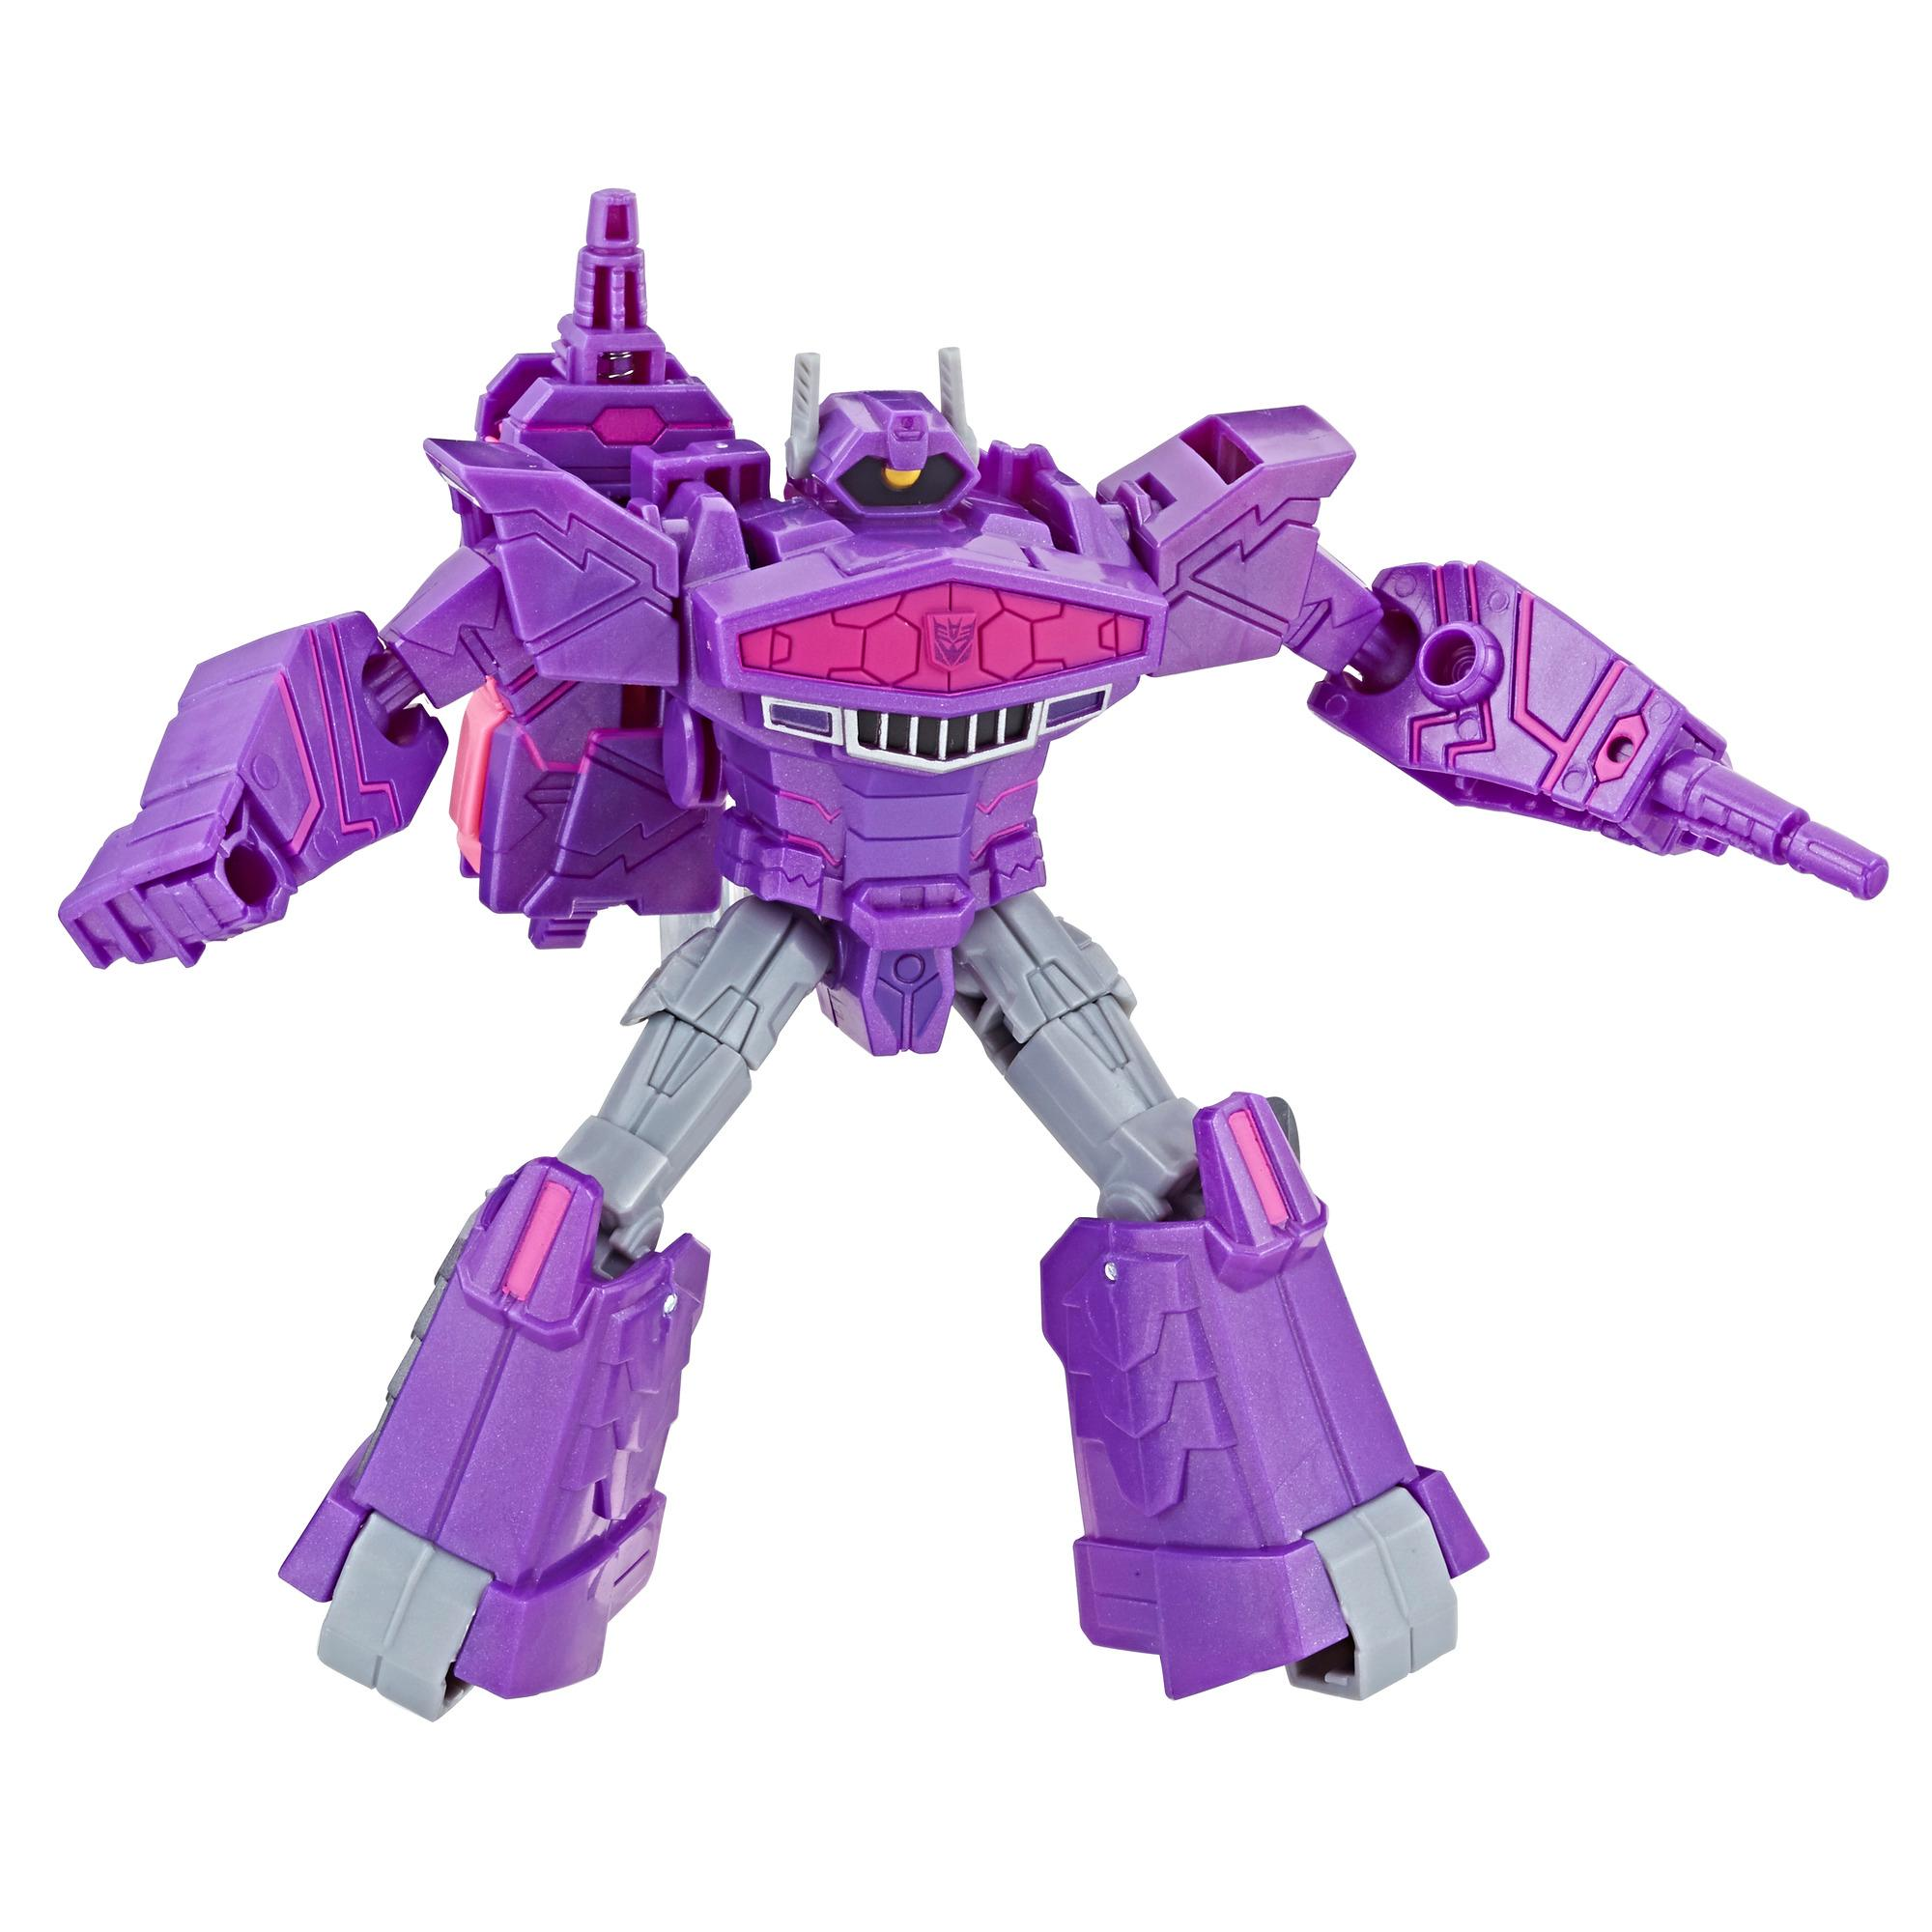 Transformers Cyberverse Warrior Class Decepticon Shockwave